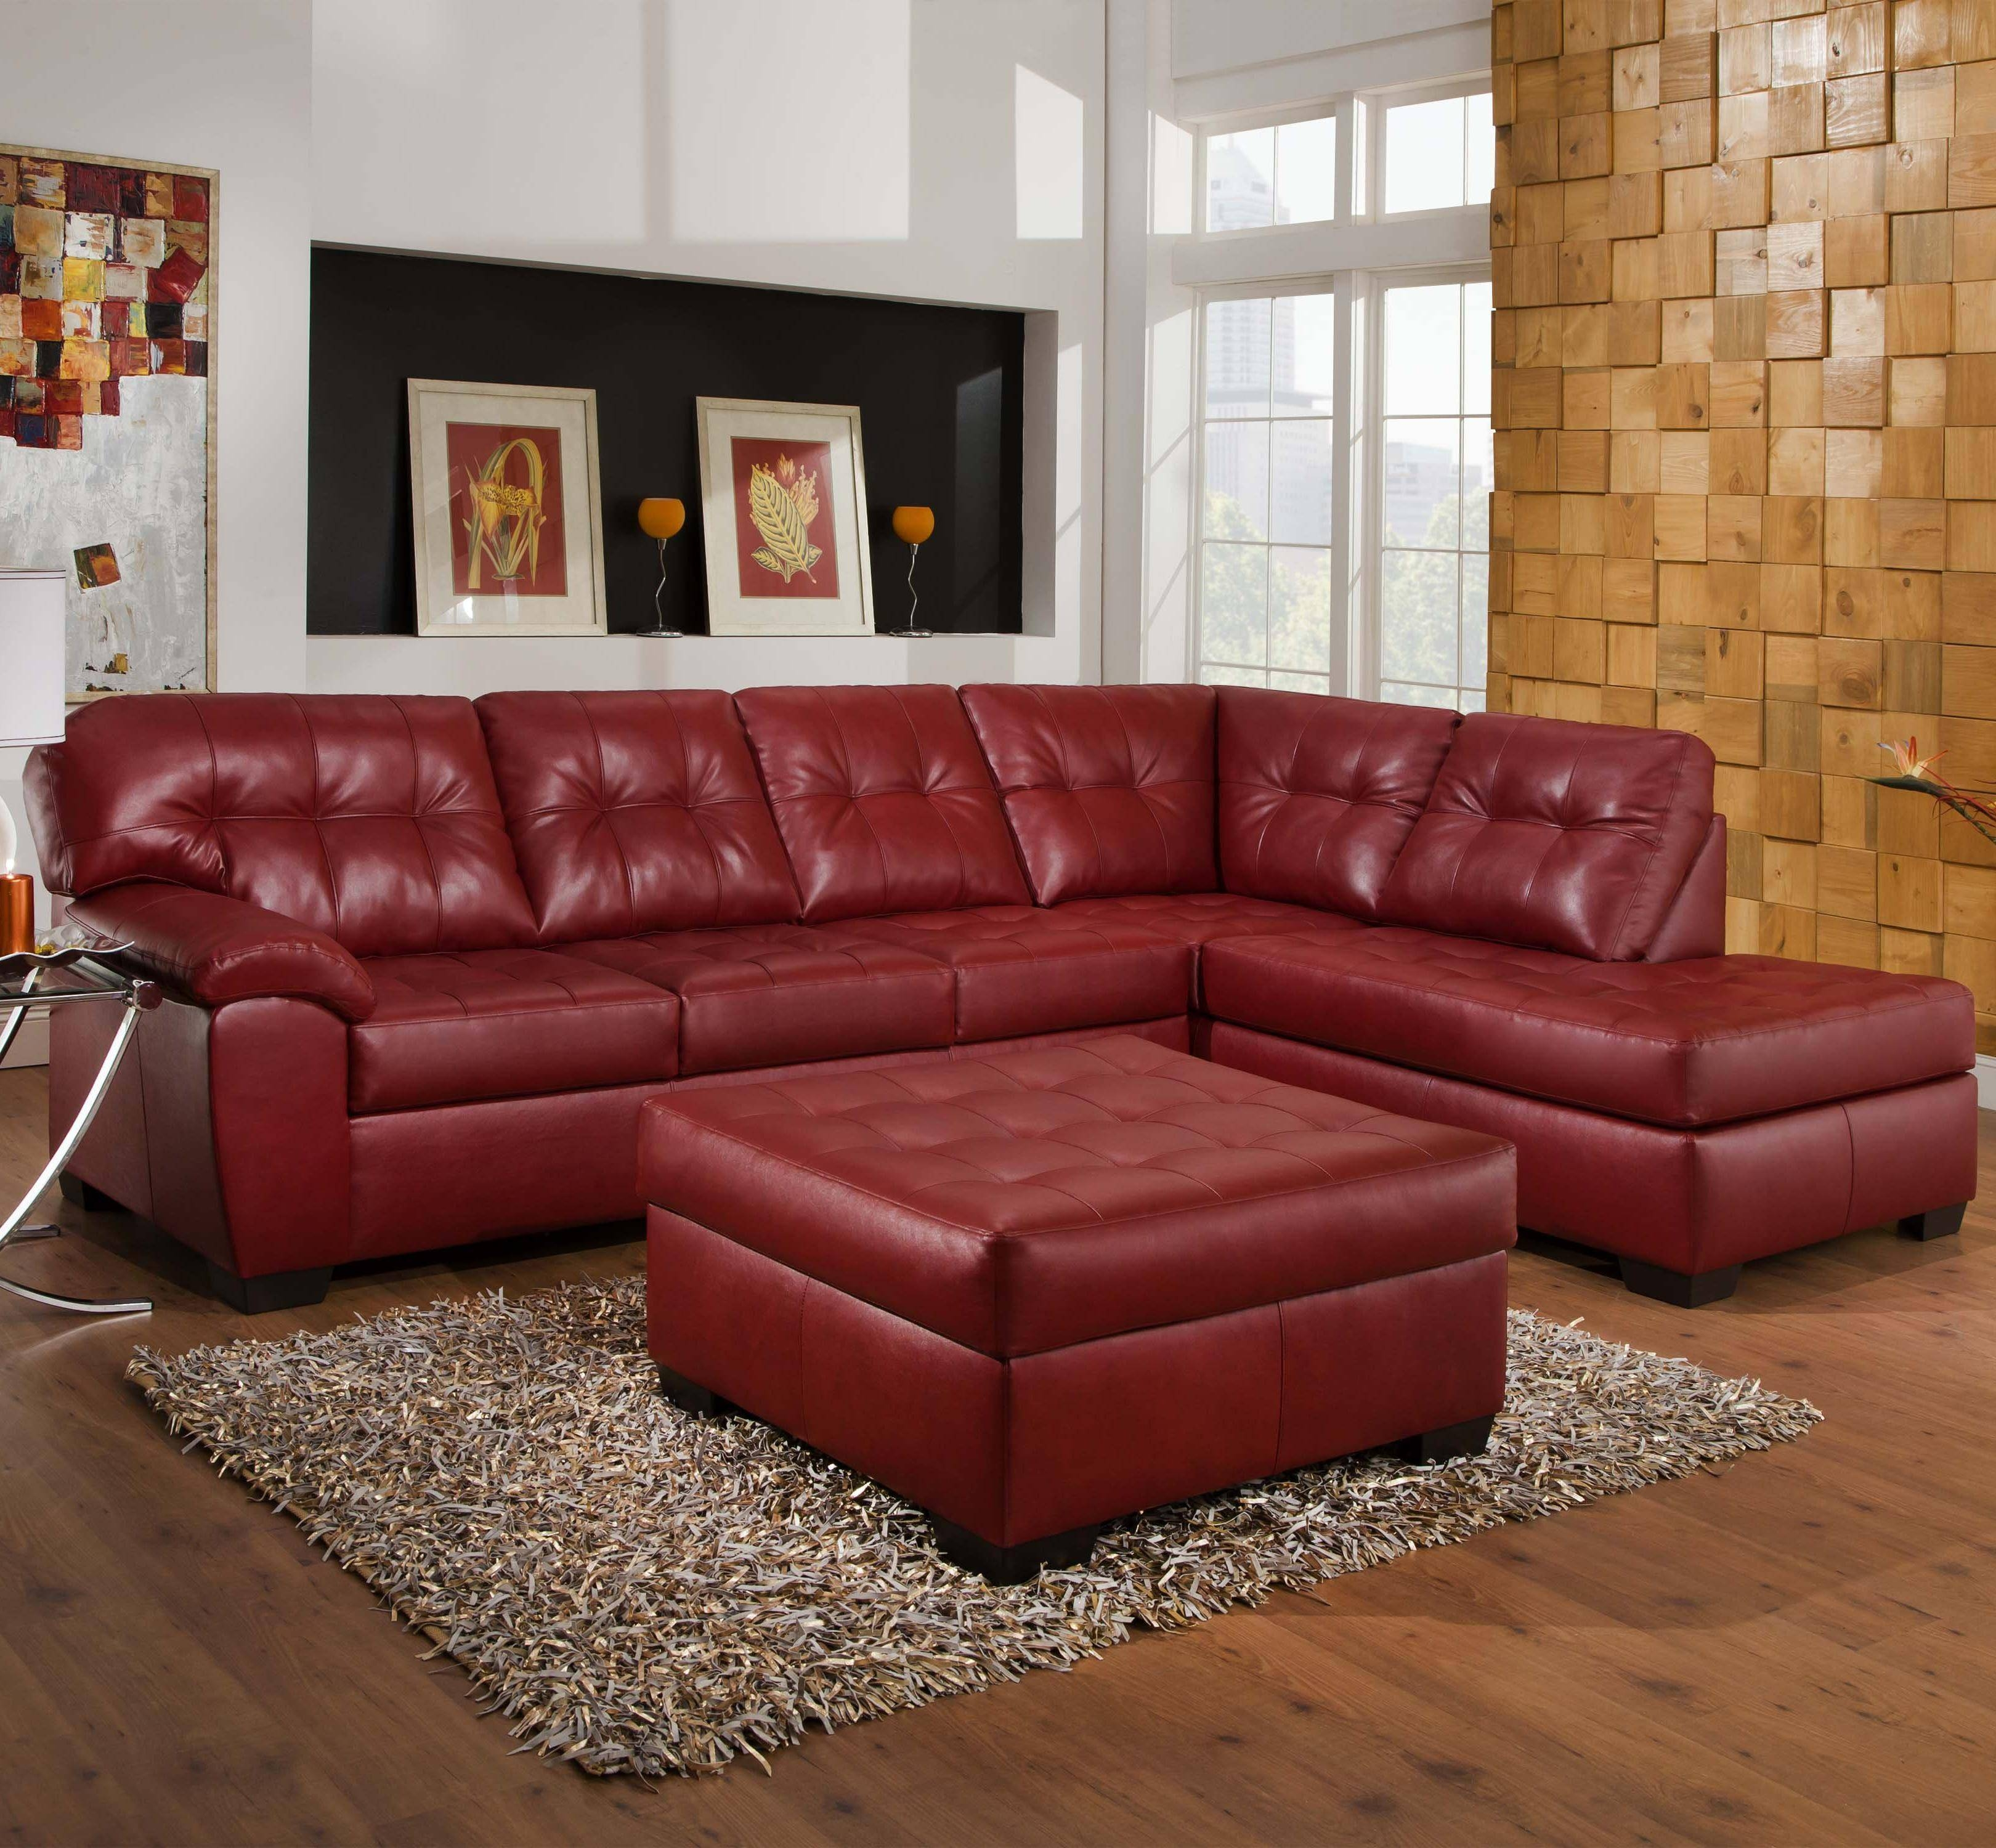 Simmons Upholstery 9569 2 Piece Sectional With Tufted Seats & Back regarding Simmons Leather Sofas (Image 13 of 15)